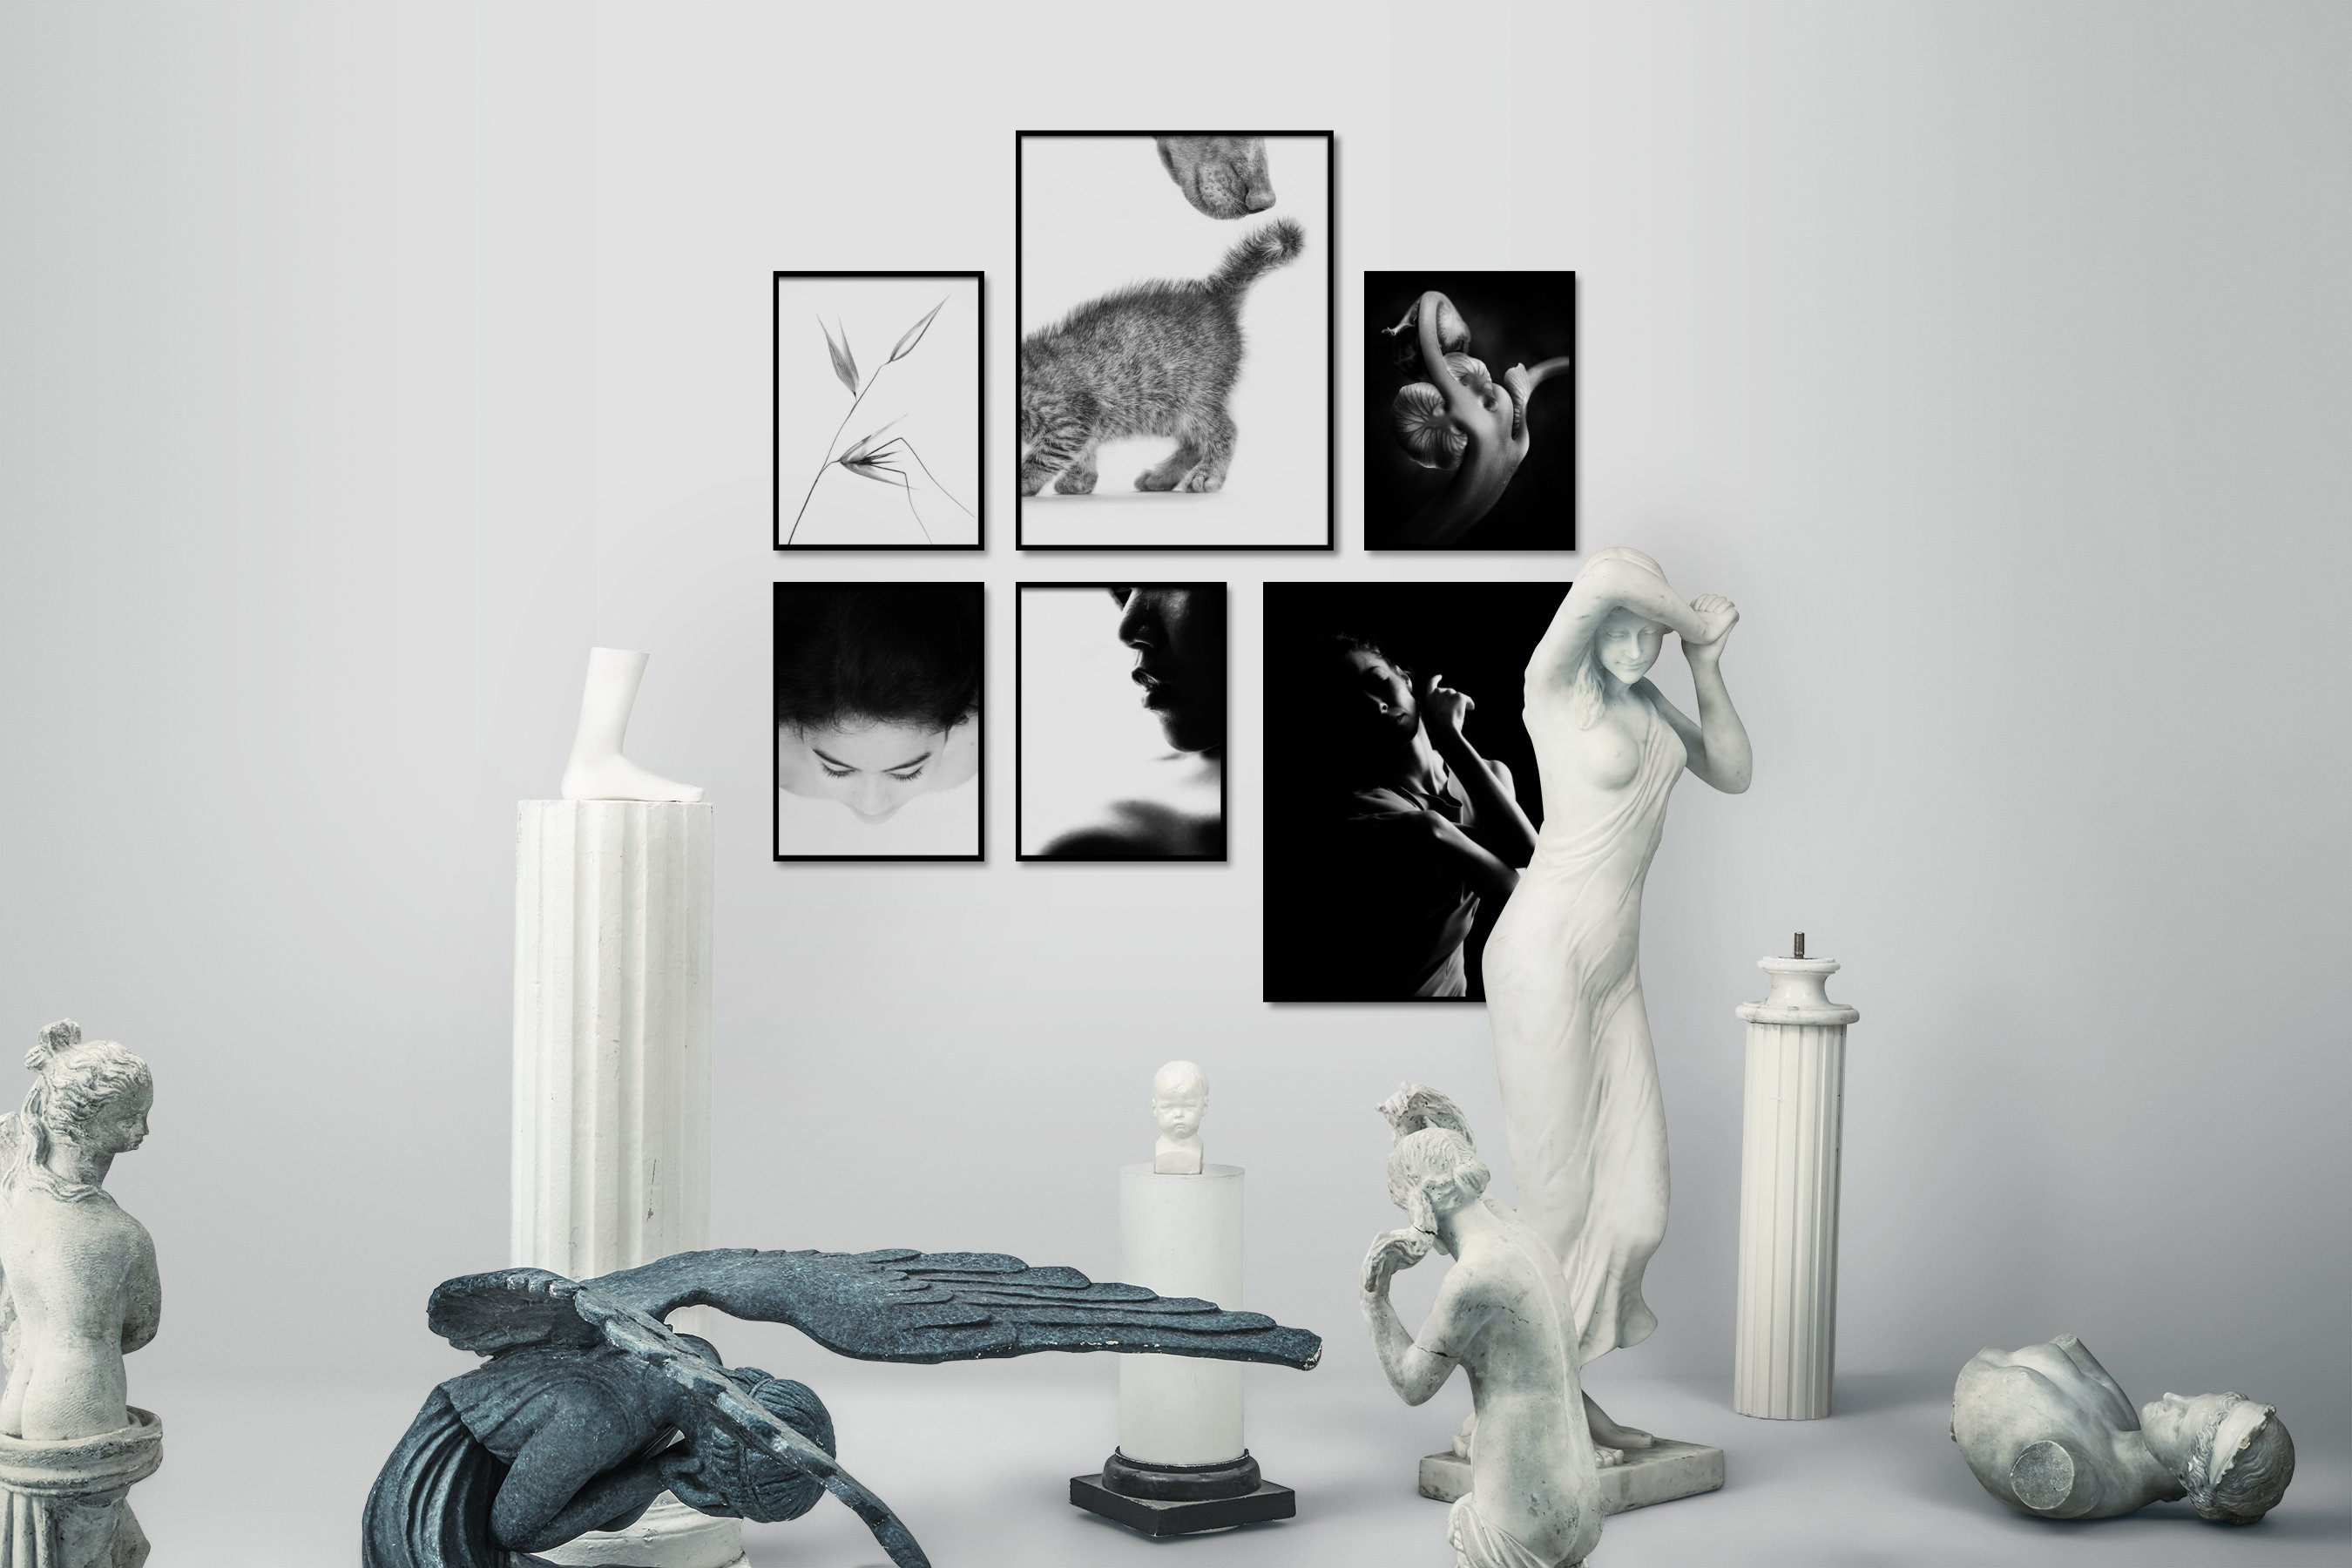 Gallery wall idea with six framed pictures arranged on a wall depicting Black & White, Bright Tones, For the Minimalist, Flowers & Plants, Mindfulness, For the Moderate, Animals, Fashion & Beauty, and Dark Tones